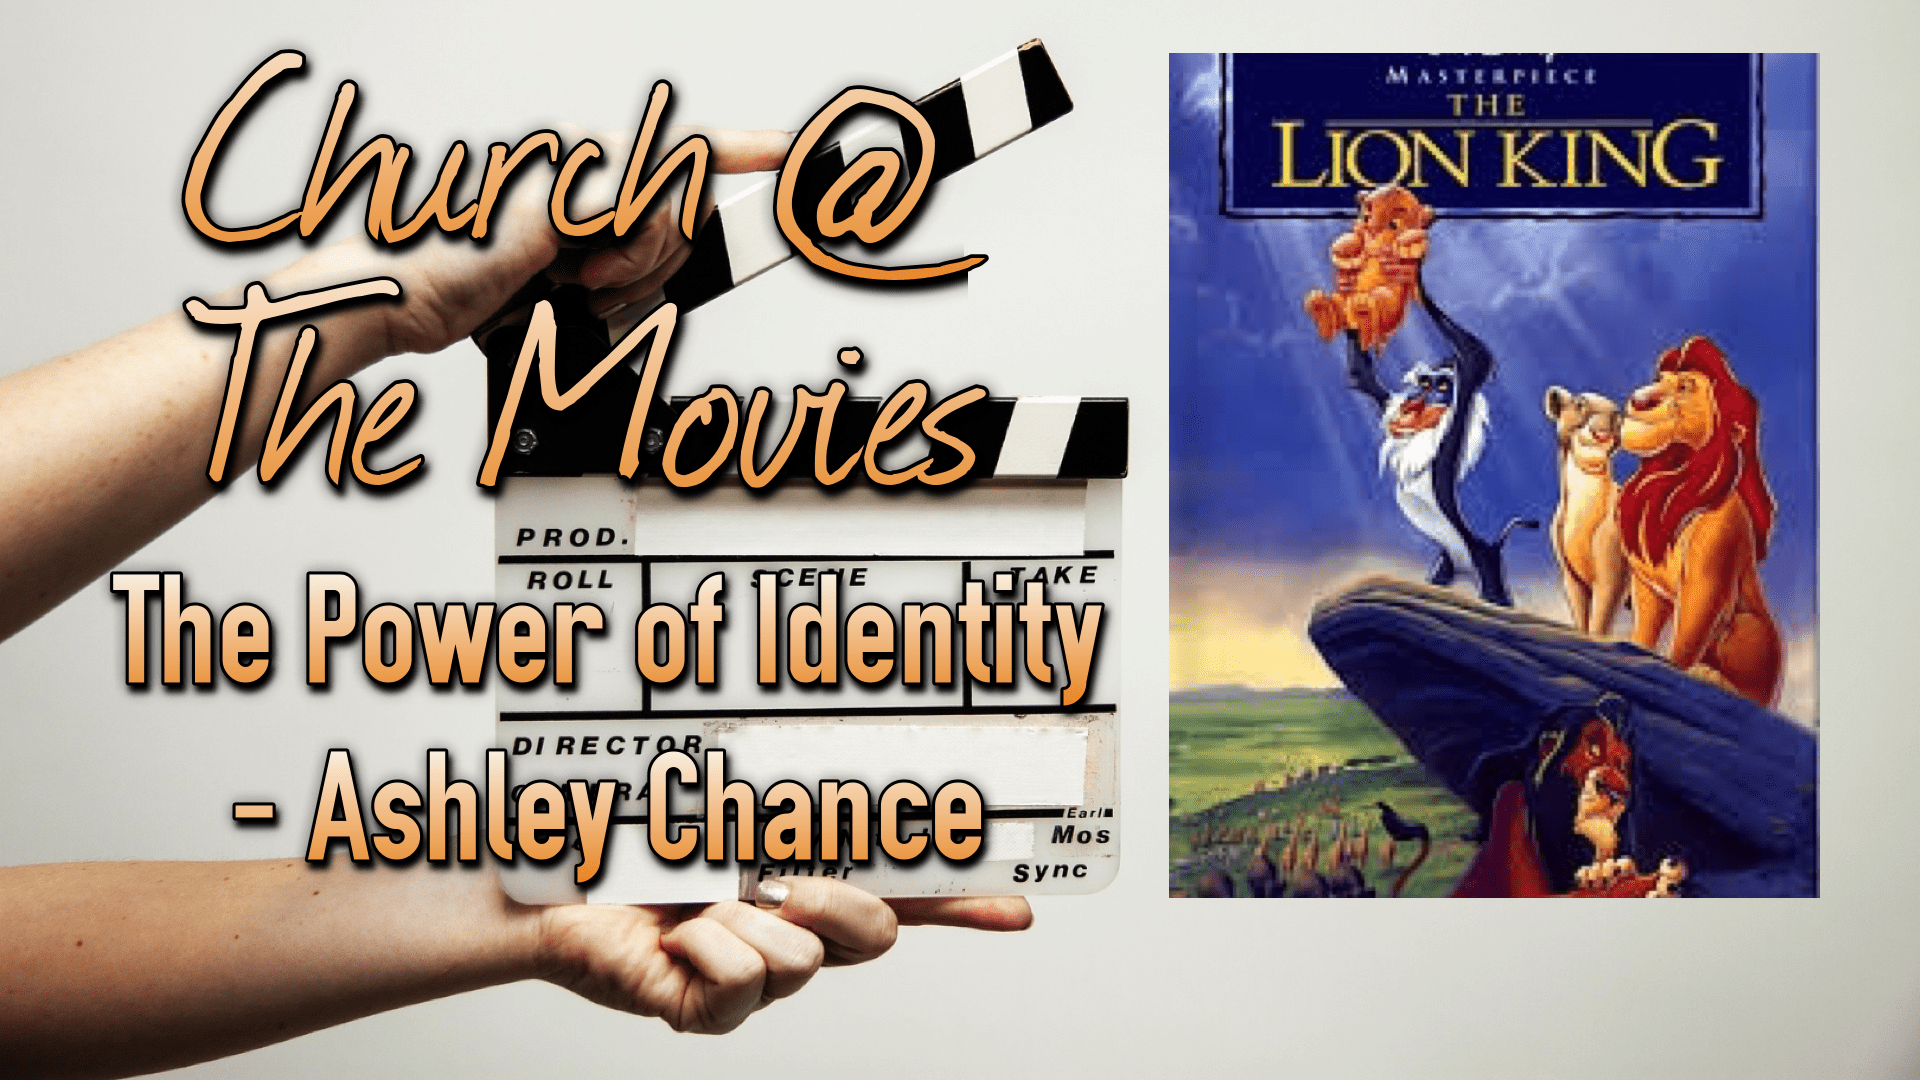 Church @ The Movies - Lion King - Power of Identity